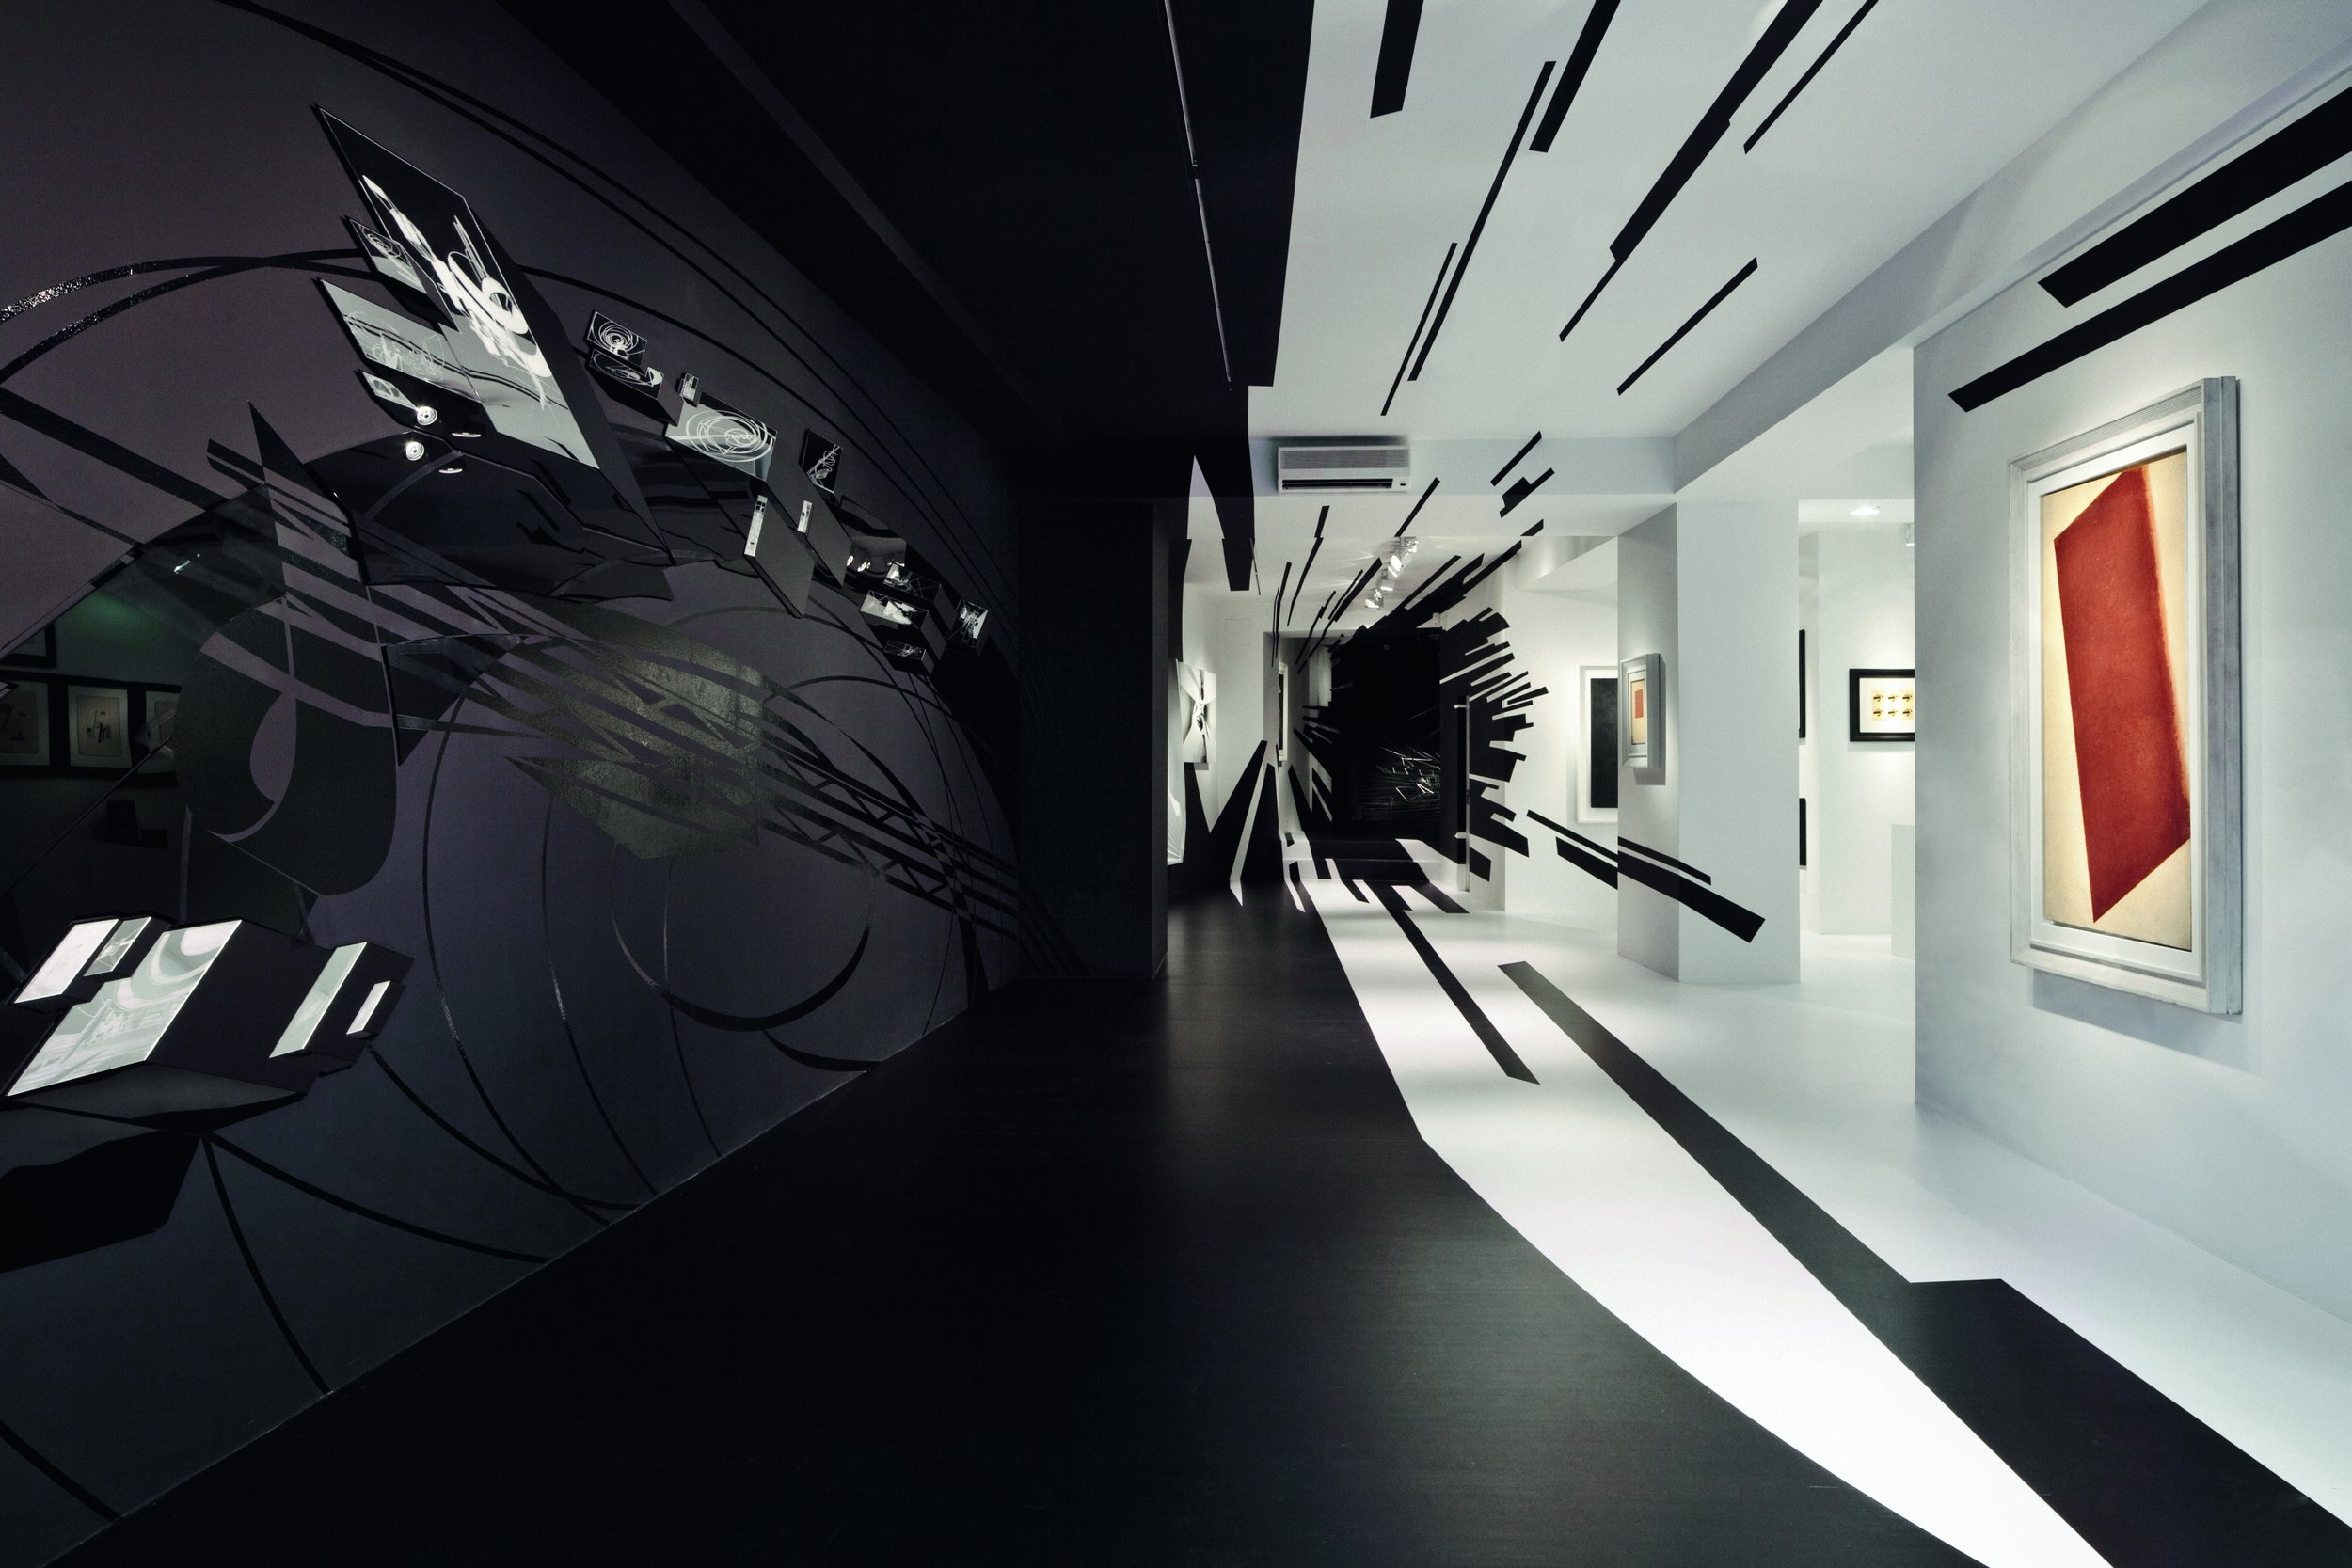 Zaha Hadid designed and curated a groundbreaking exhibition at Zurich's Galerie Gmurzynska, comparing works of the Russian avant-garde with those of her own.